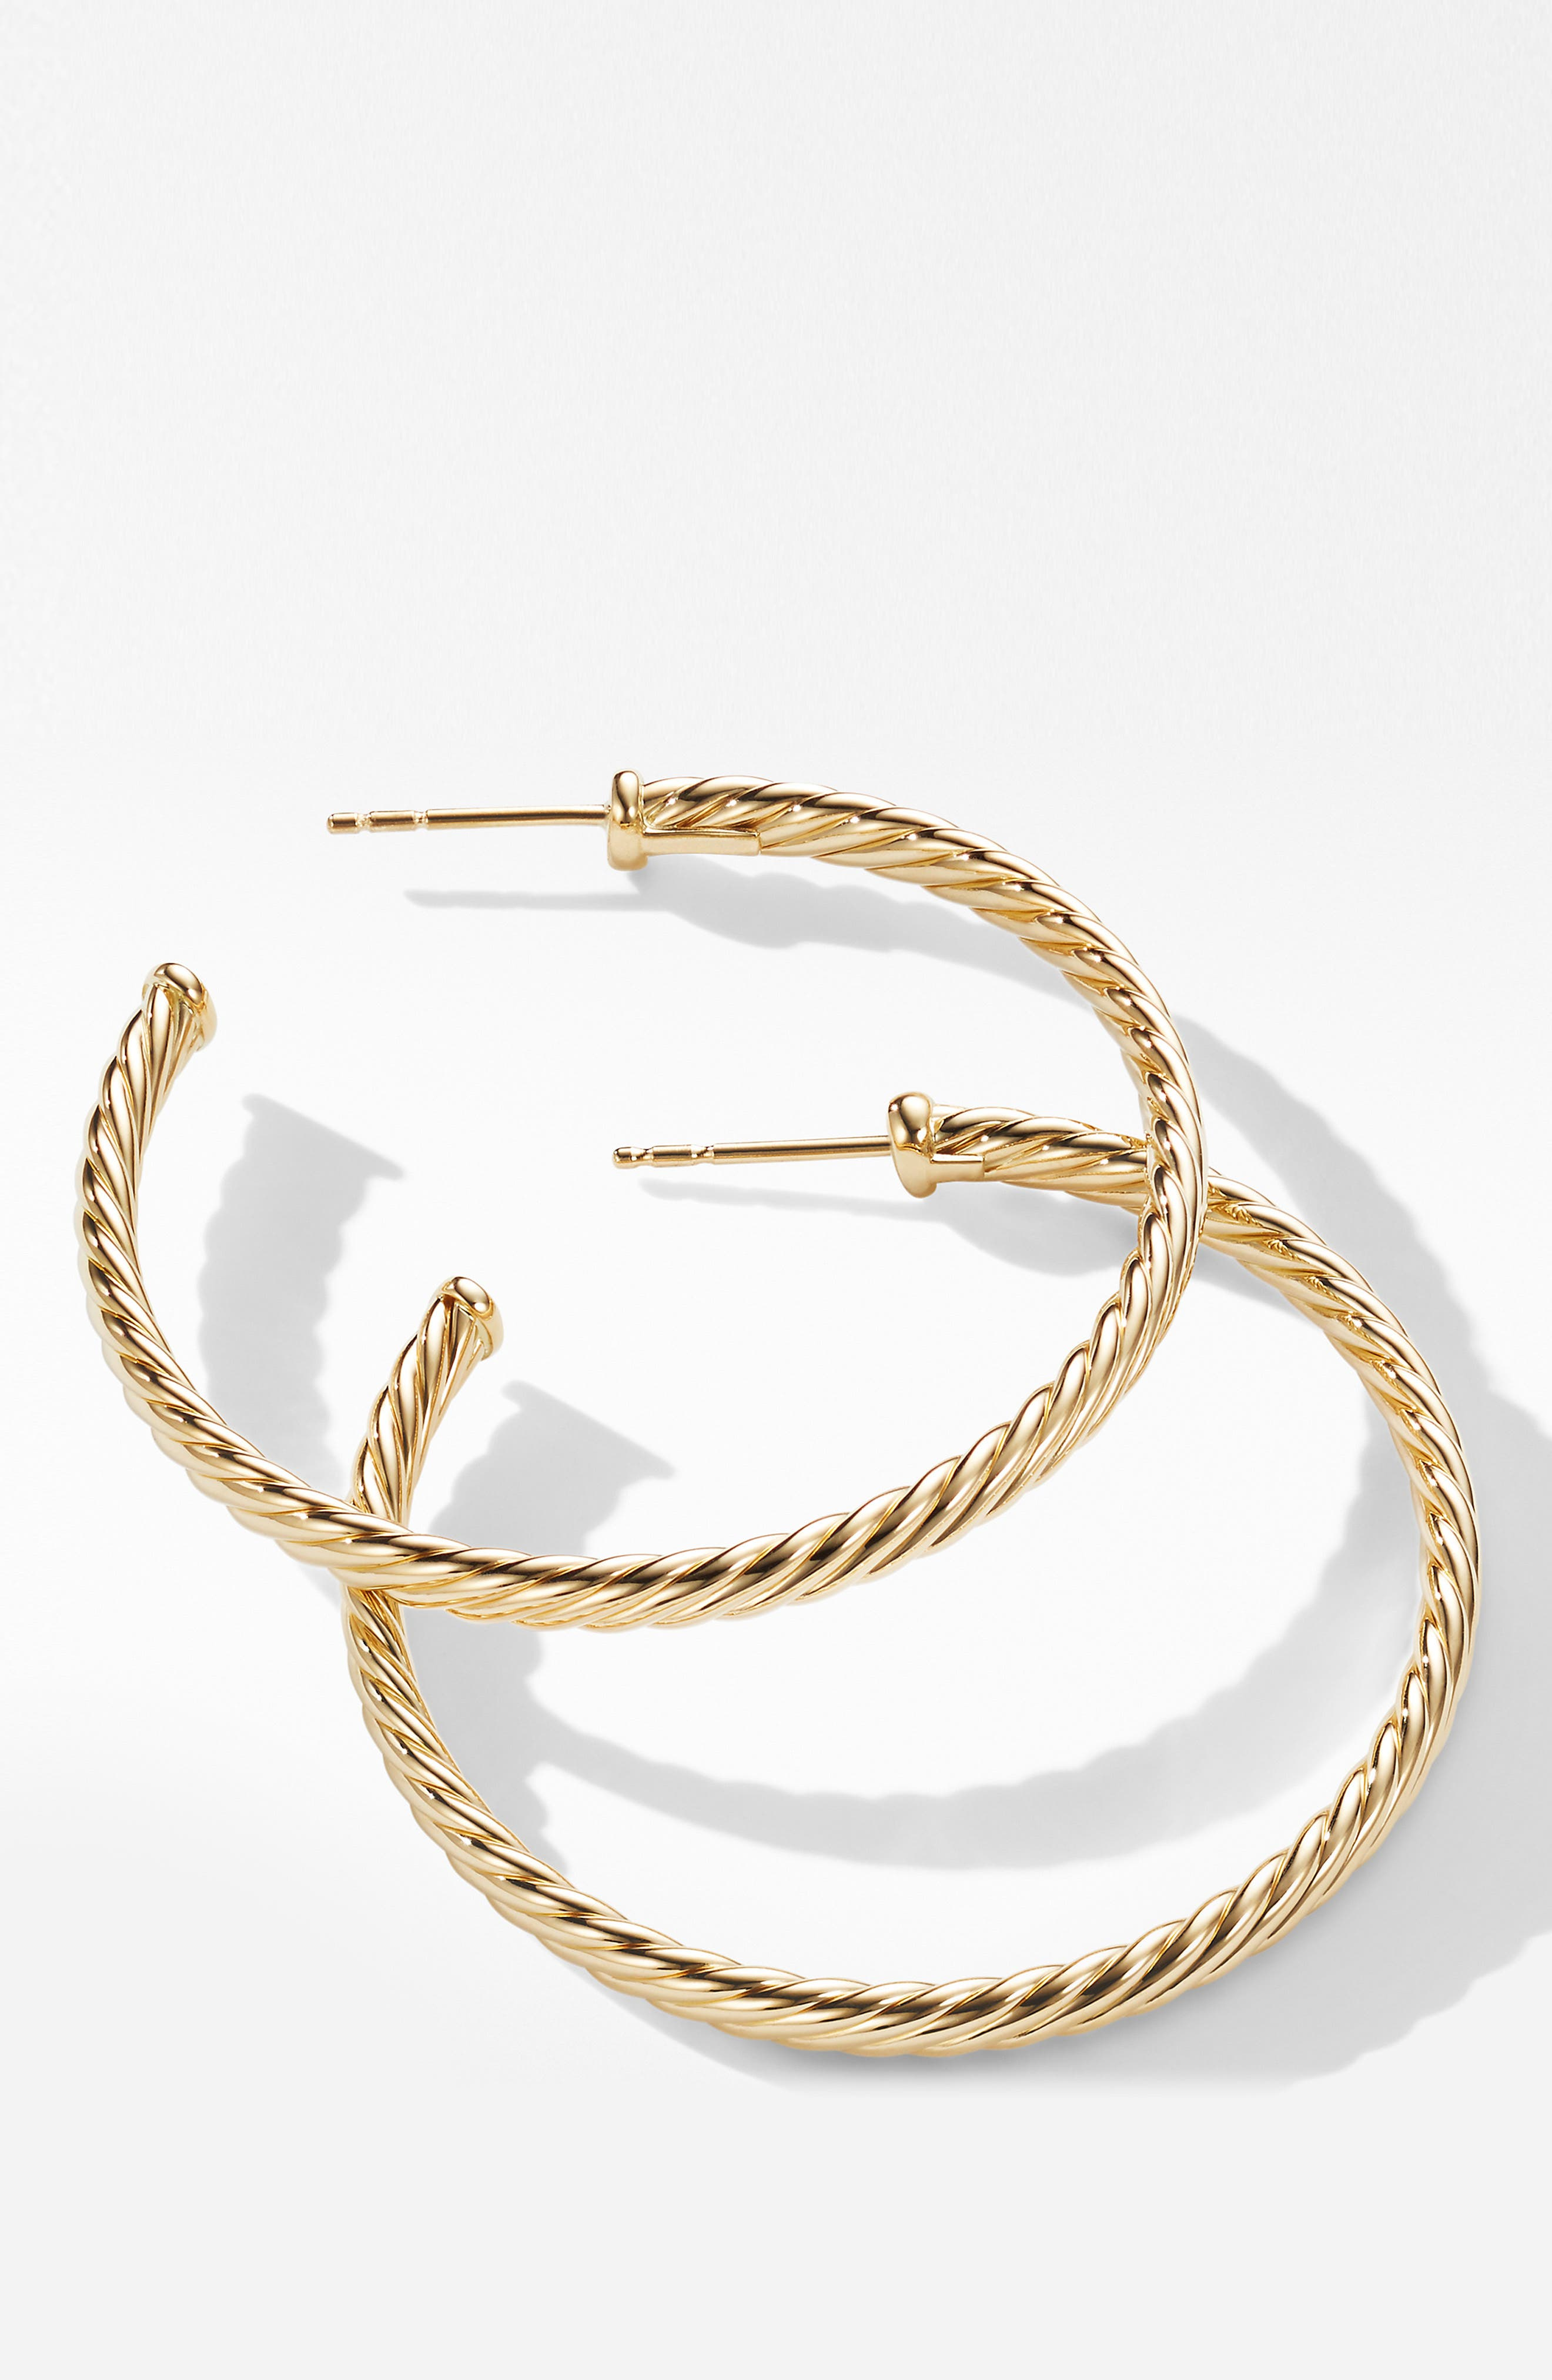 DAVID YURMAN, Cable Spiral Hoop Earrings, Alternate thumbnail 2, color, GOLD